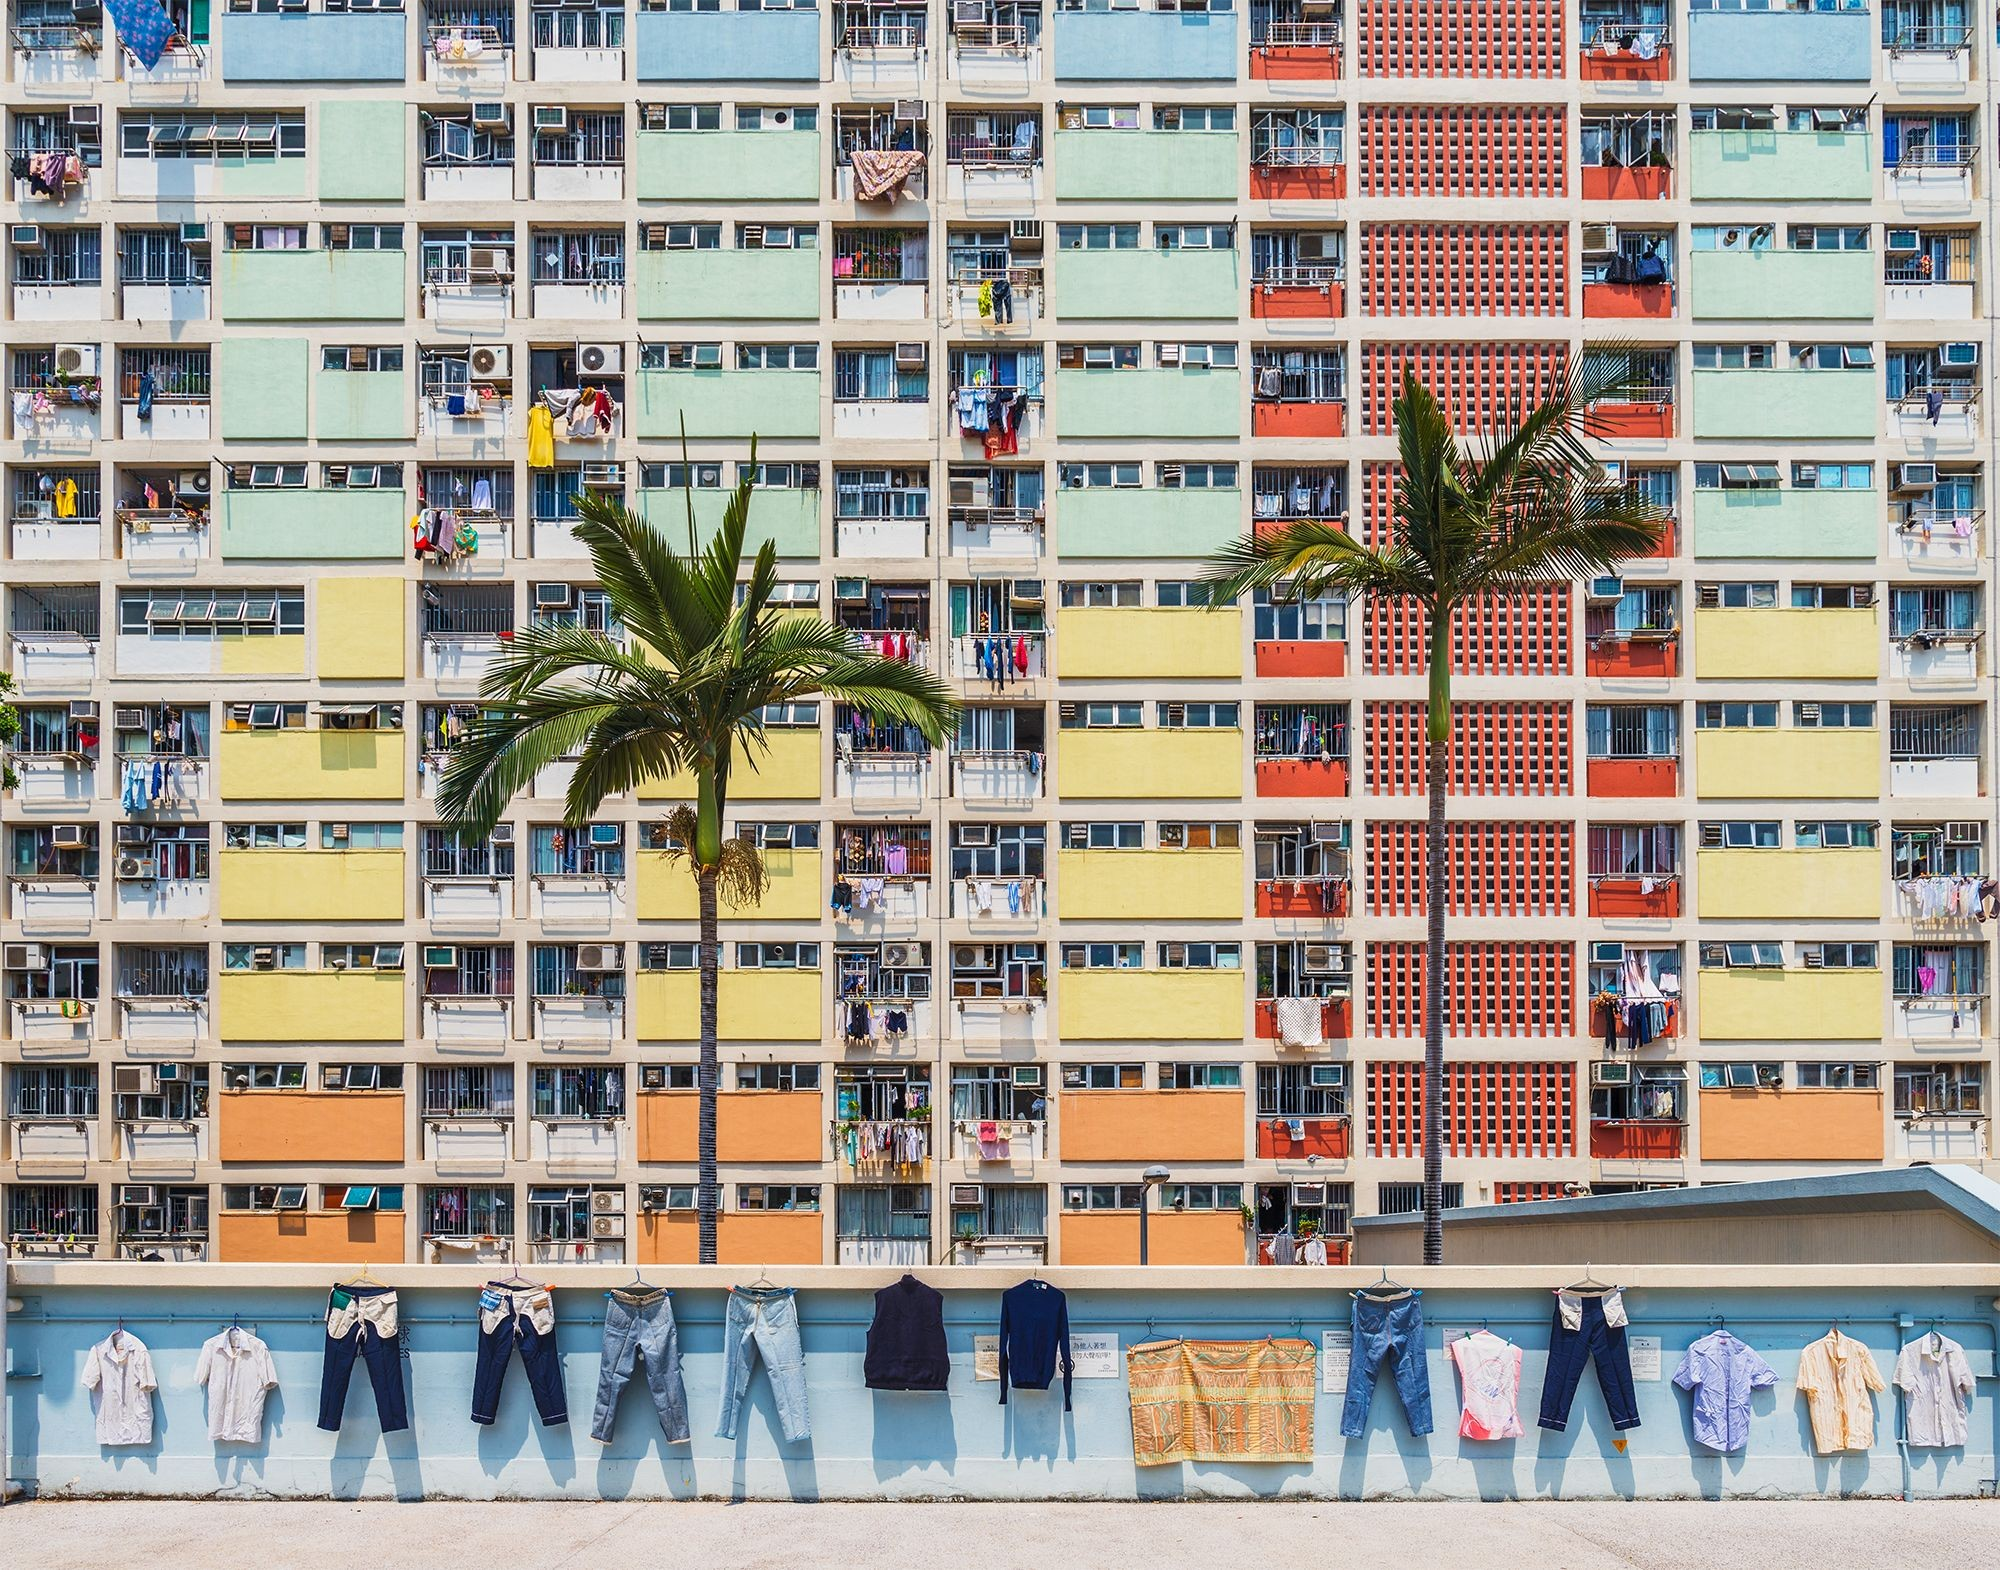 Ten Of The Most Colourful Images That Capture The World Around Us